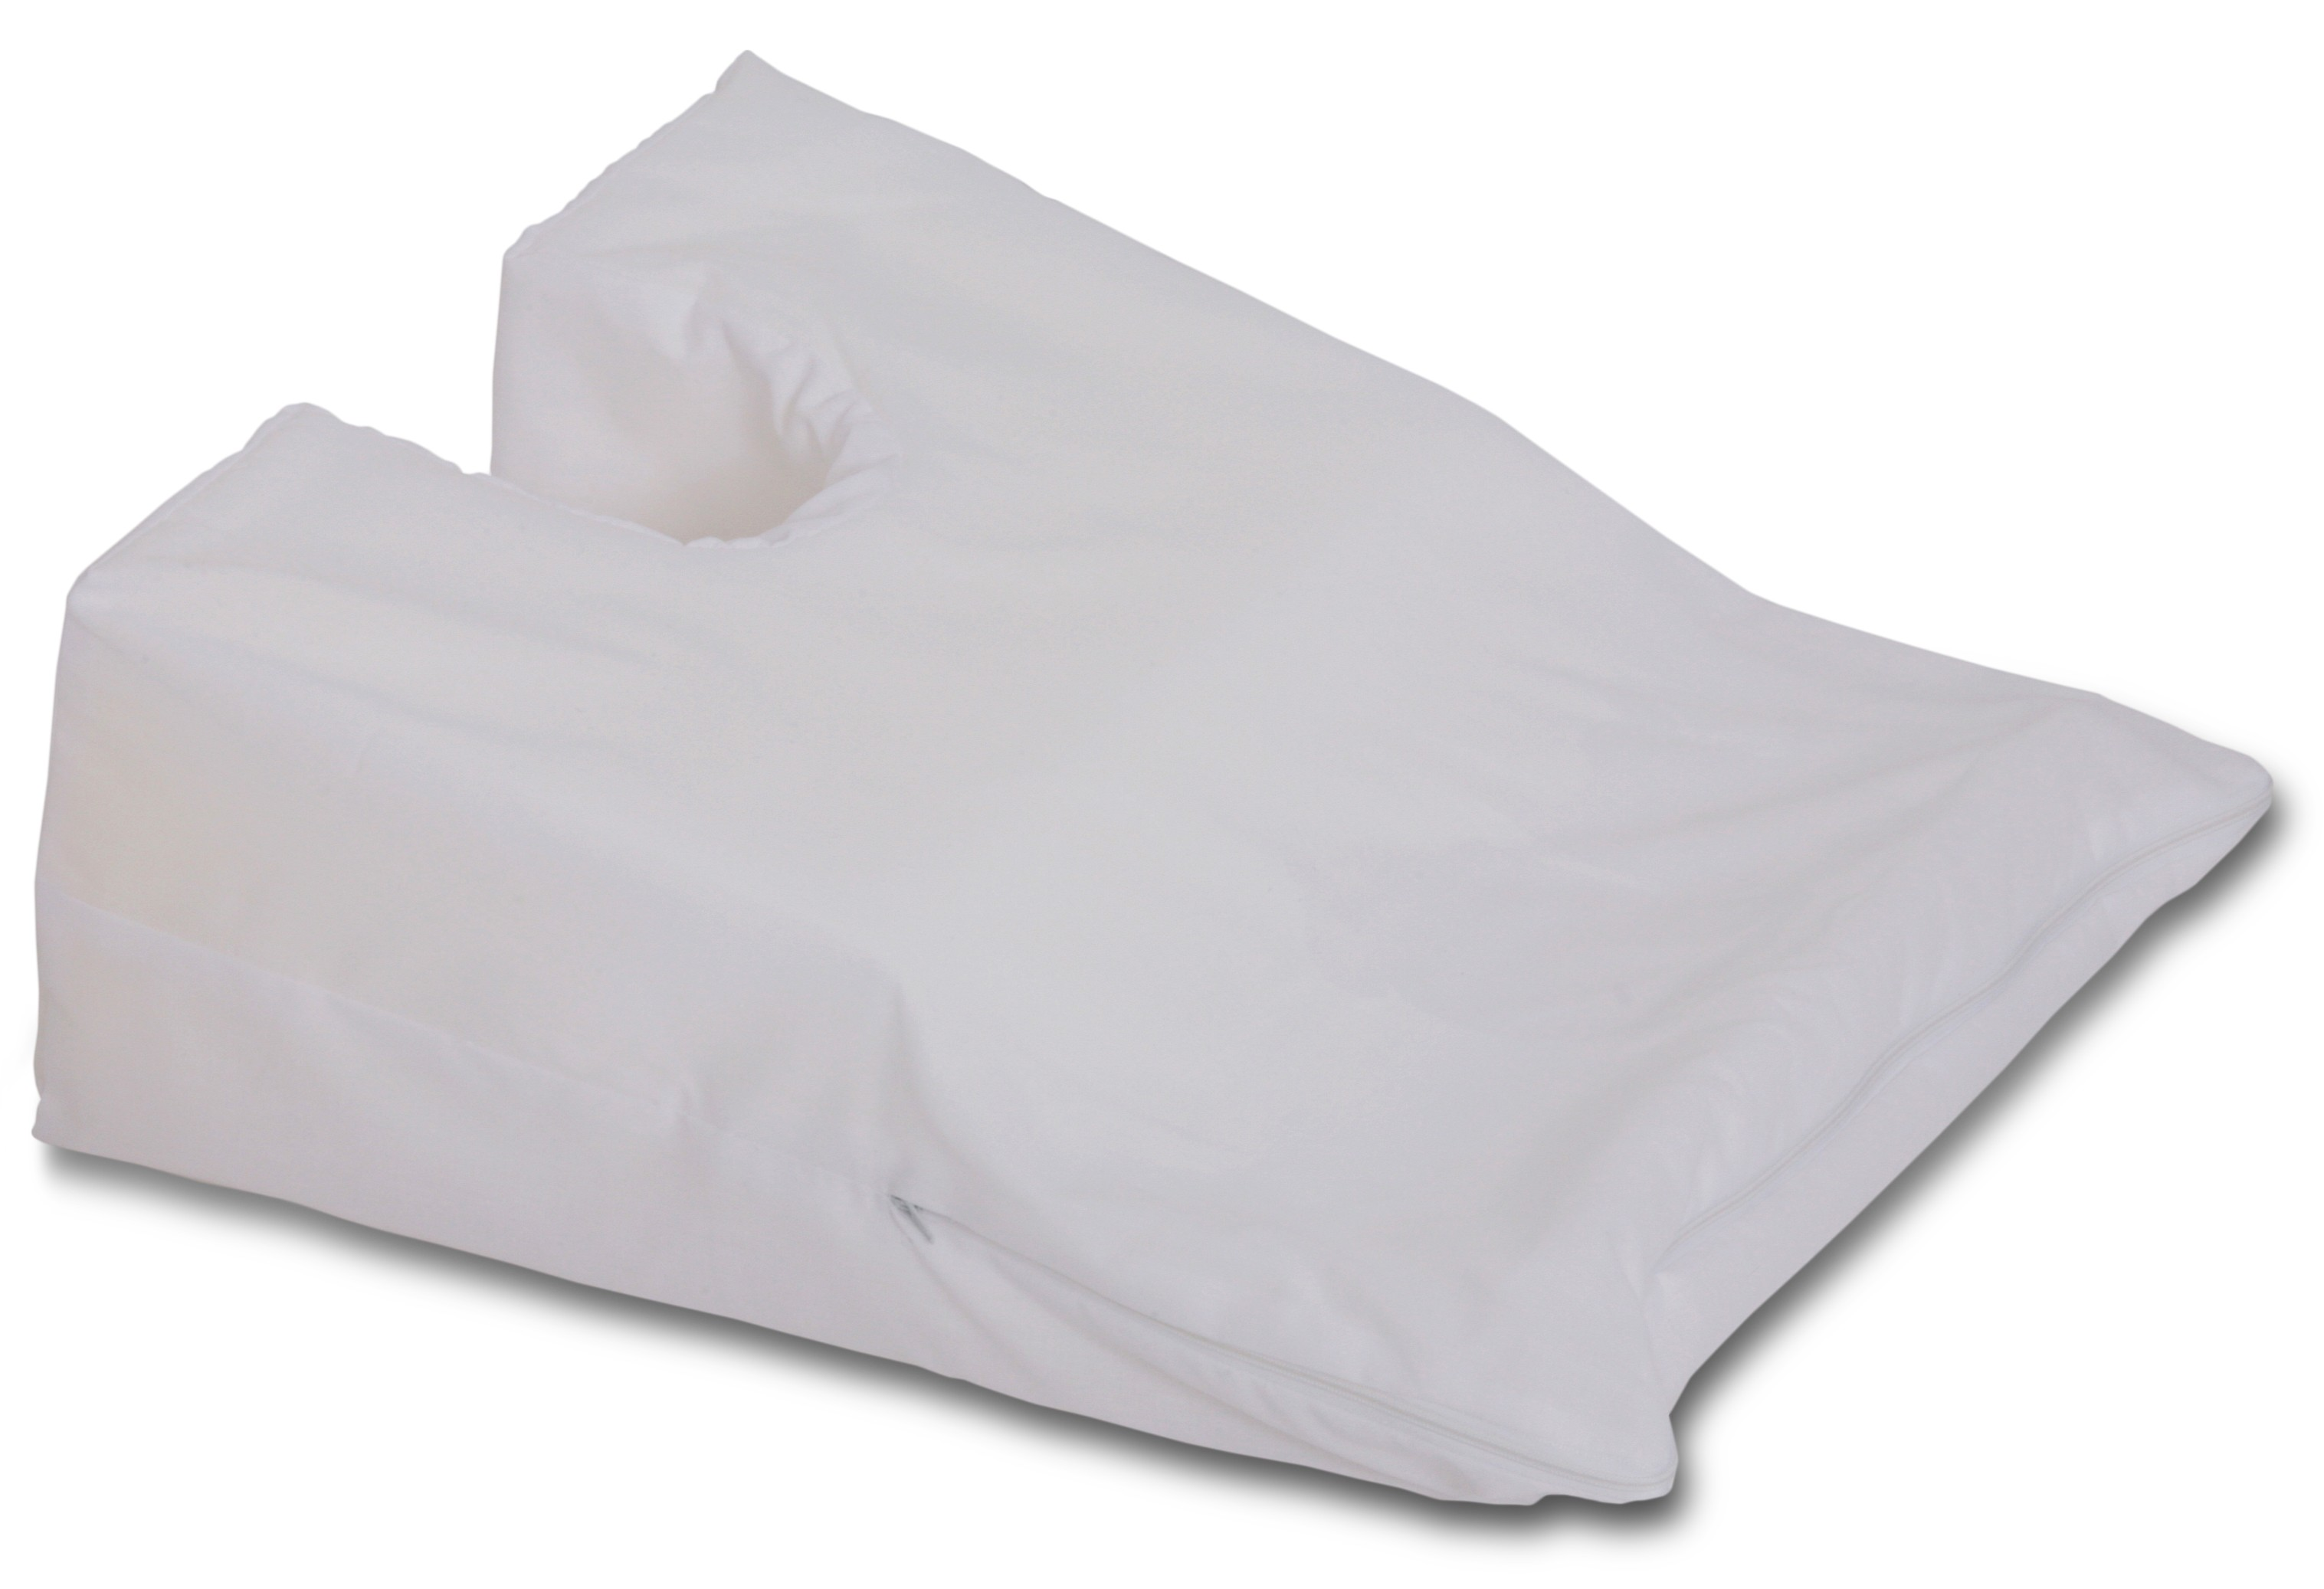 Stomach Sleeping Face Down Pillow Small Size 17 X 14